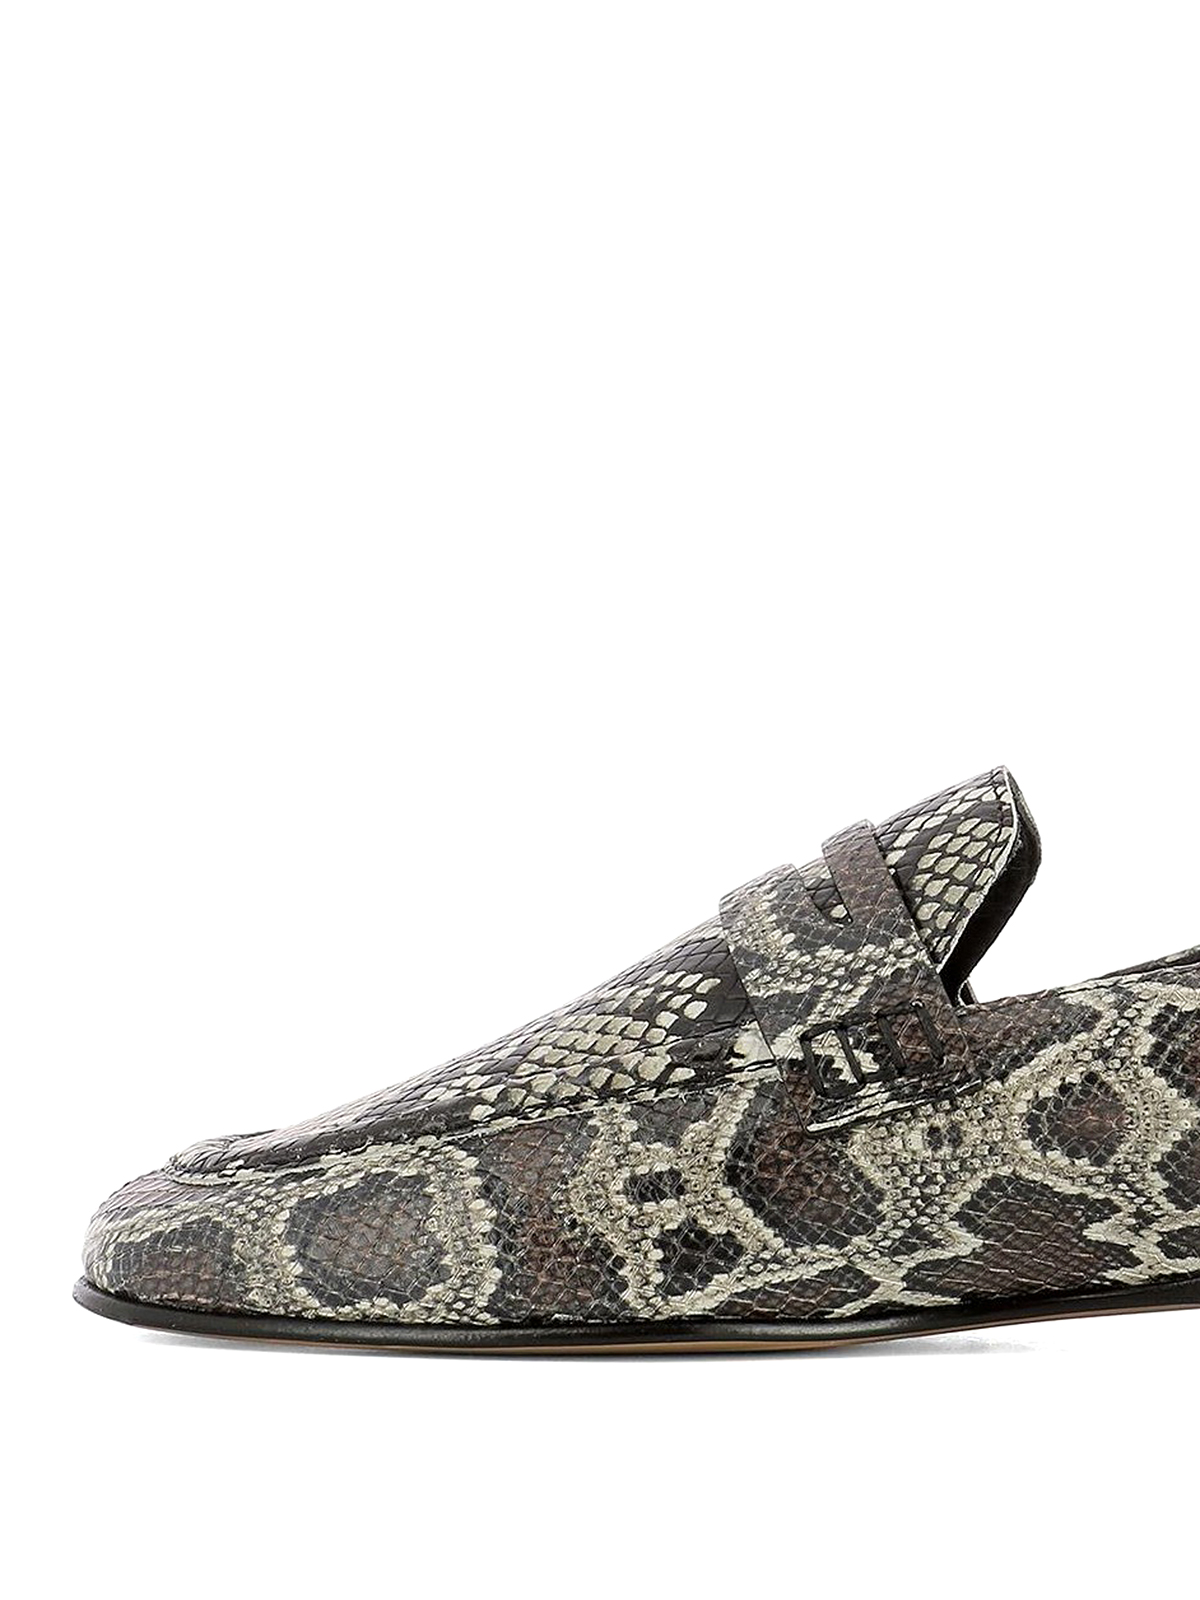 c8a92b83def iKRIX ISABEL MARANT  Loafers   Slippers - Fezzy python print leather loafers